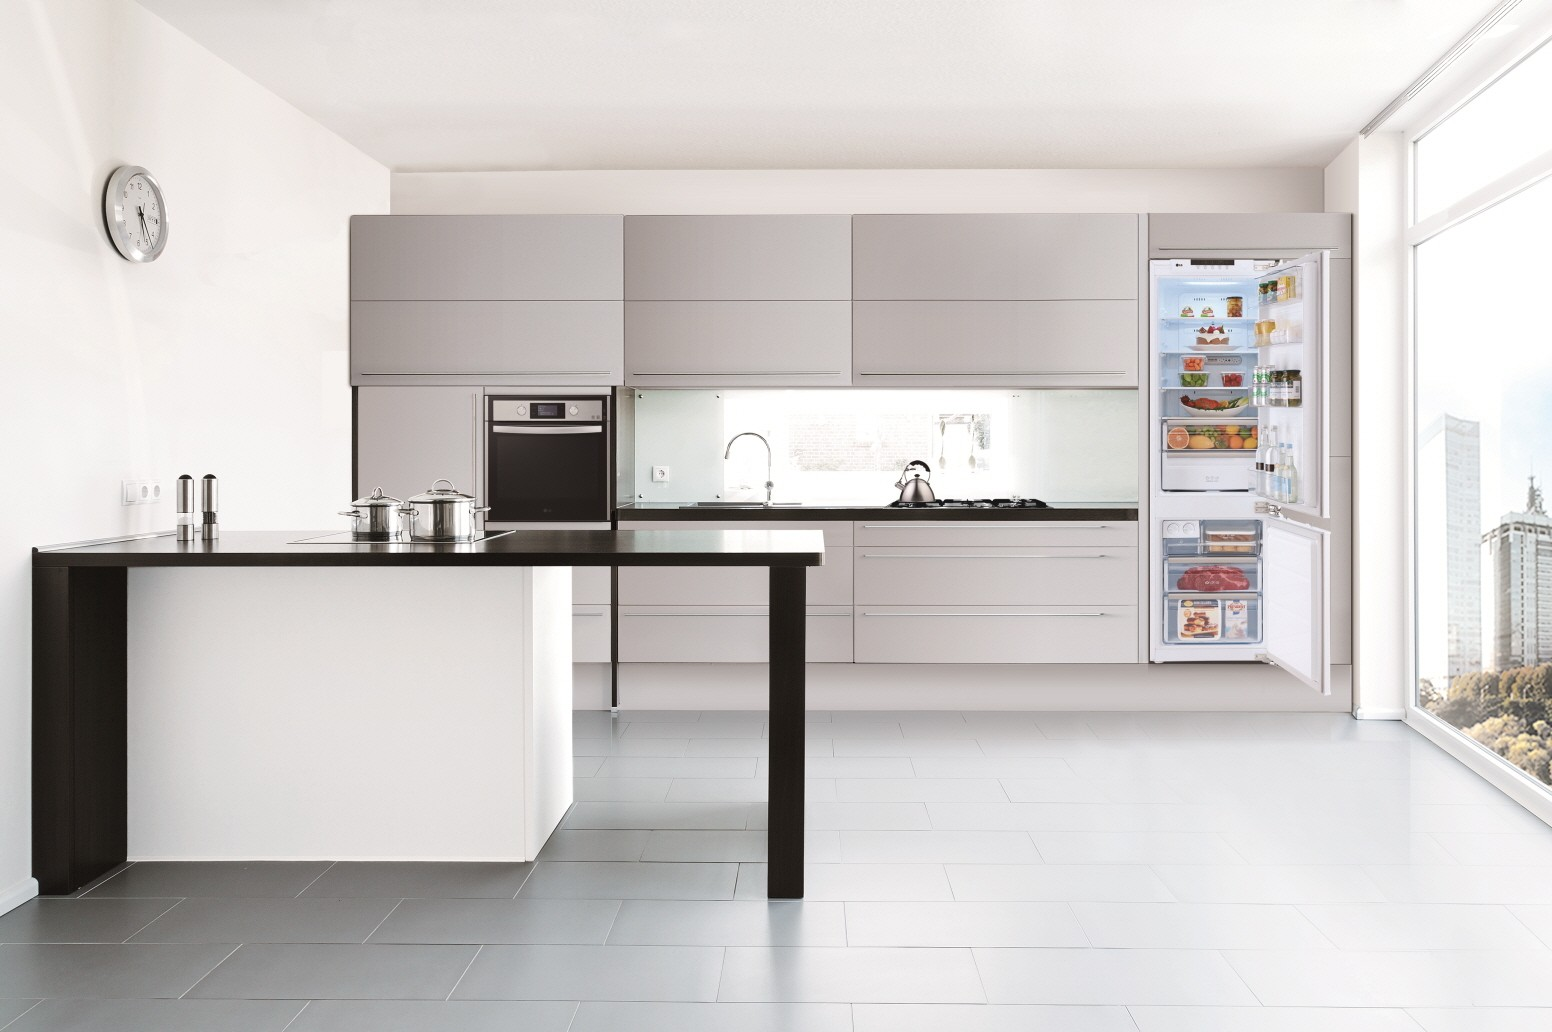 5 Dream Kitchen Must Haves: LG INTRODUCES PORTFOLIO OF MUST-HAVE APPLIANCES FOR DREAM